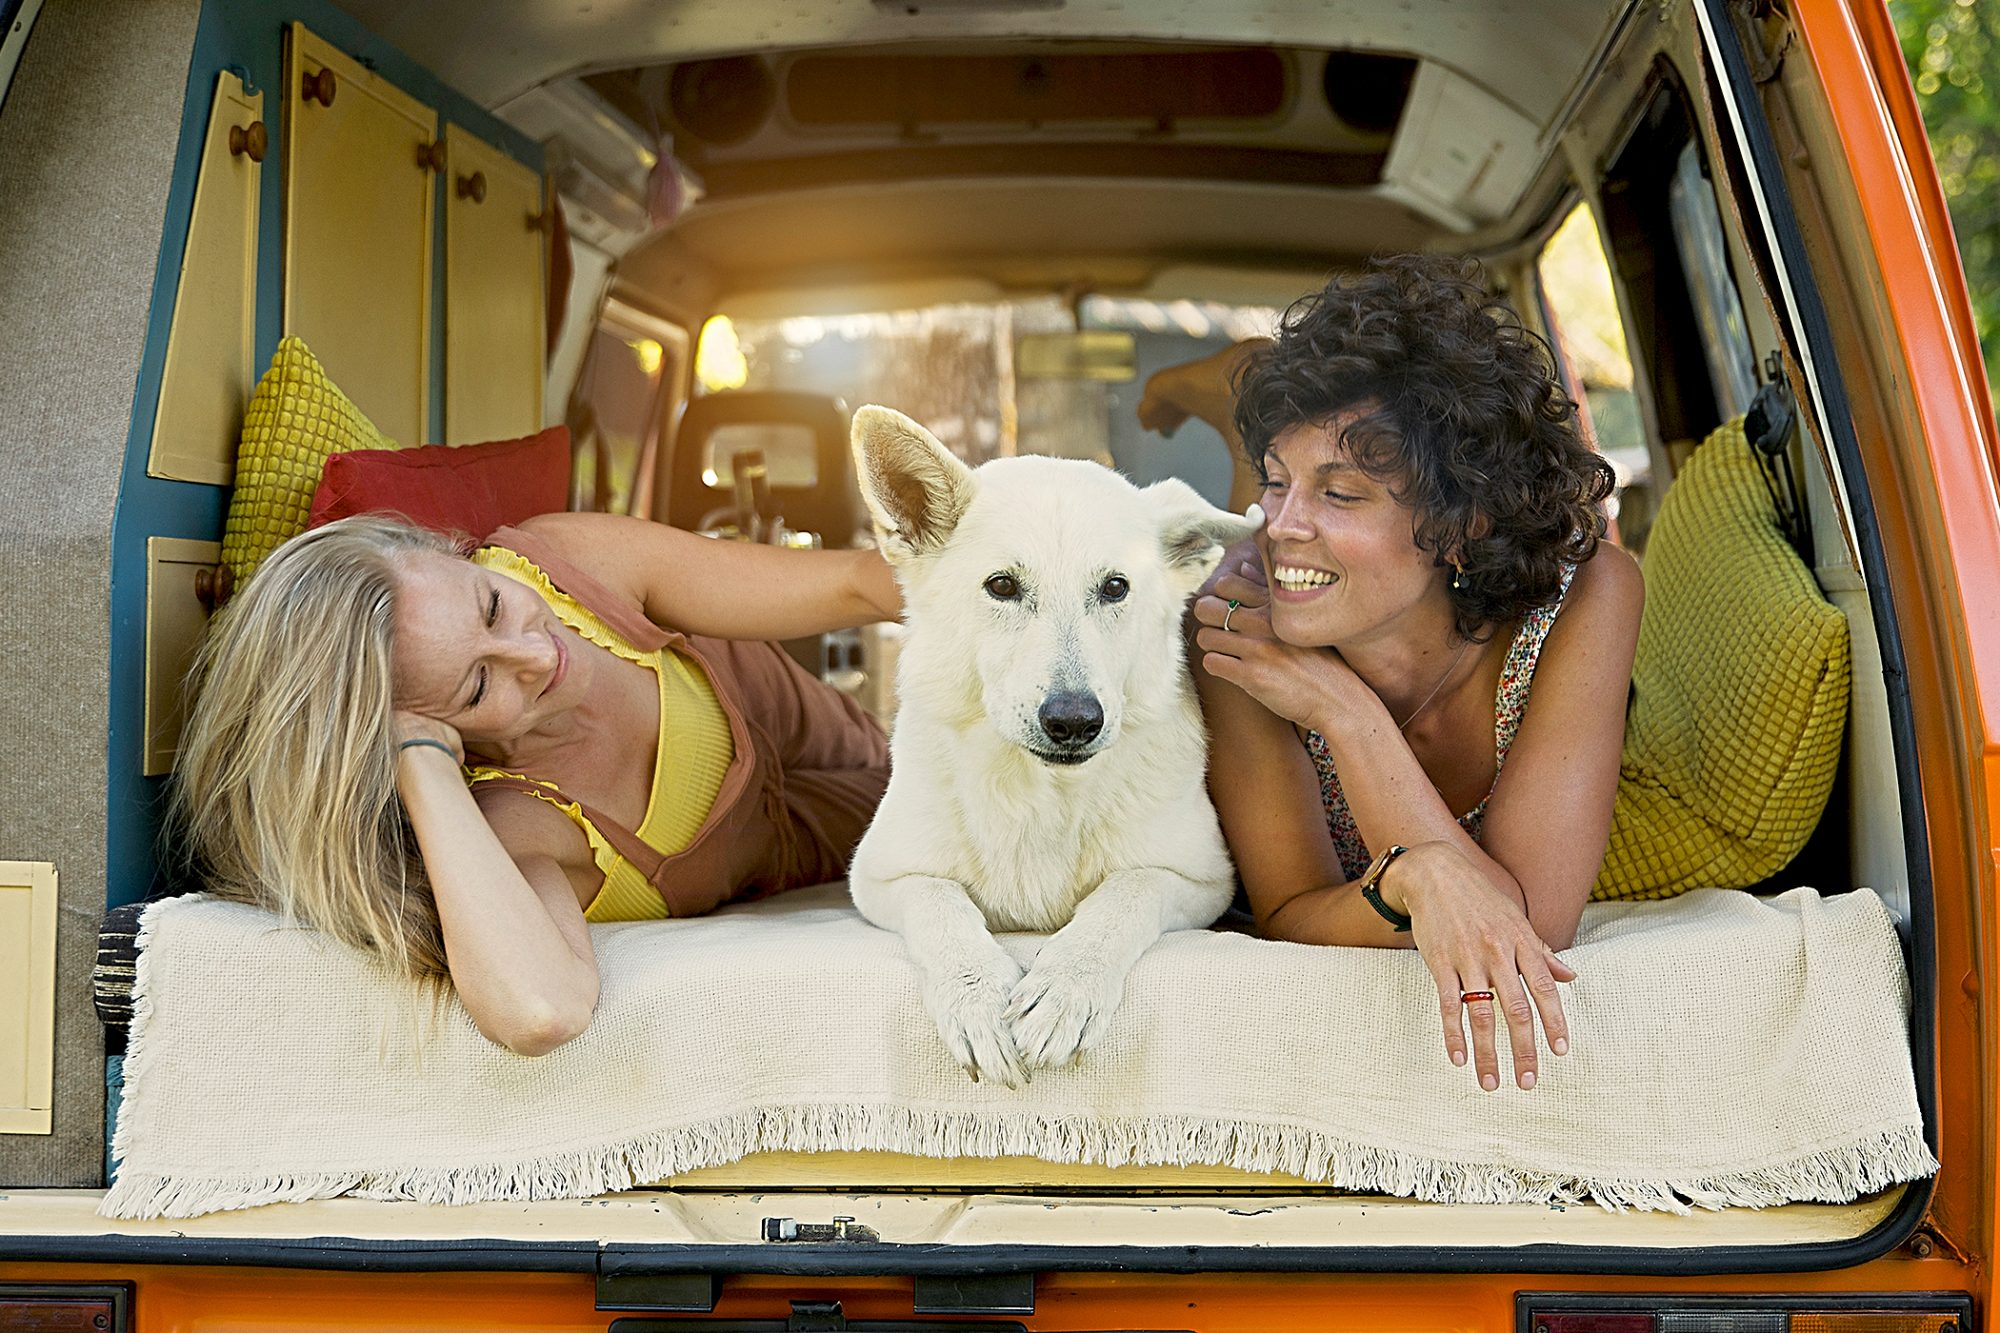 A dog in the back of a travel van with two women